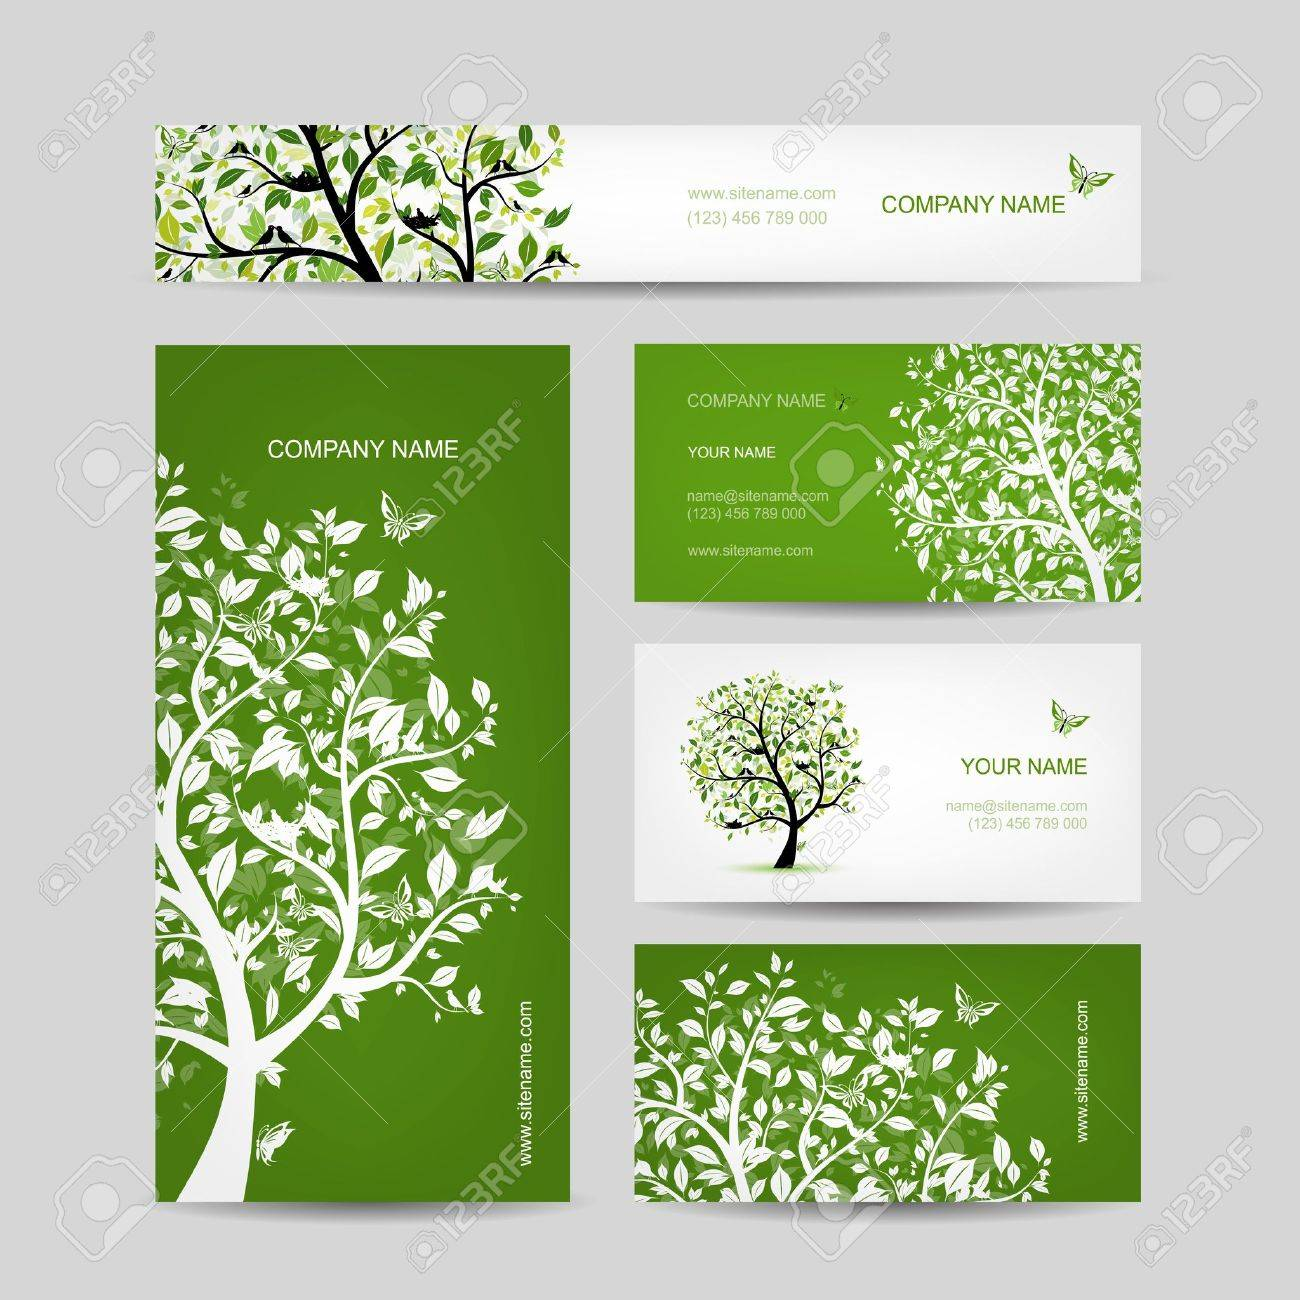 Business cards design, spring tree with birds Stock Vector - 29227234